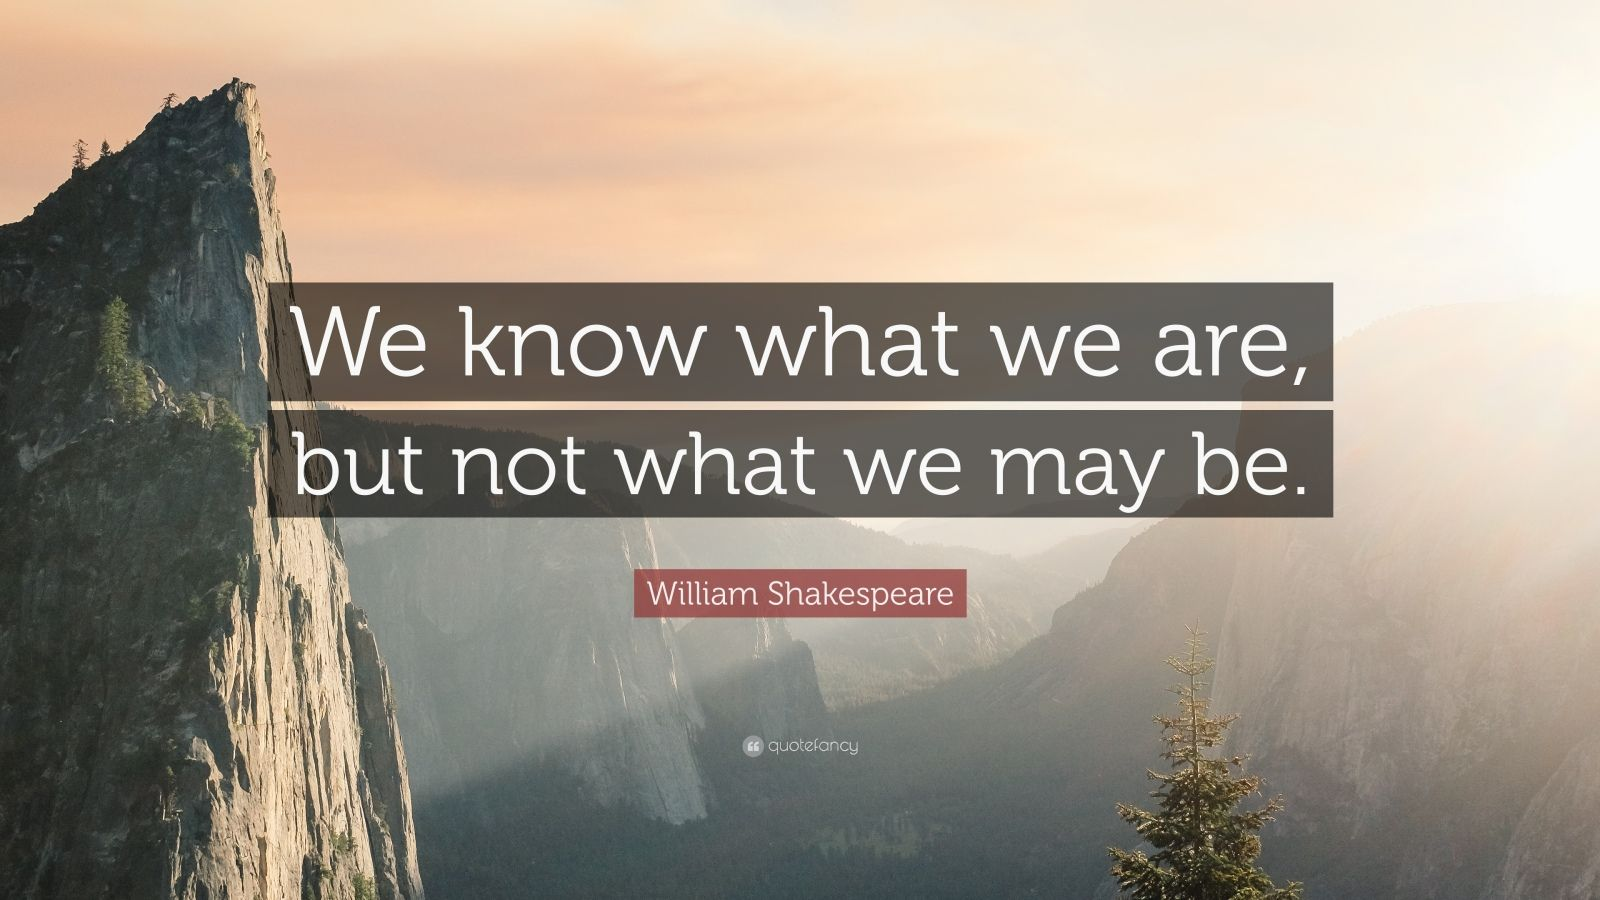 Quotes On True Love With Wallpaper William Shakespeare Quote We Know What We Are But Not